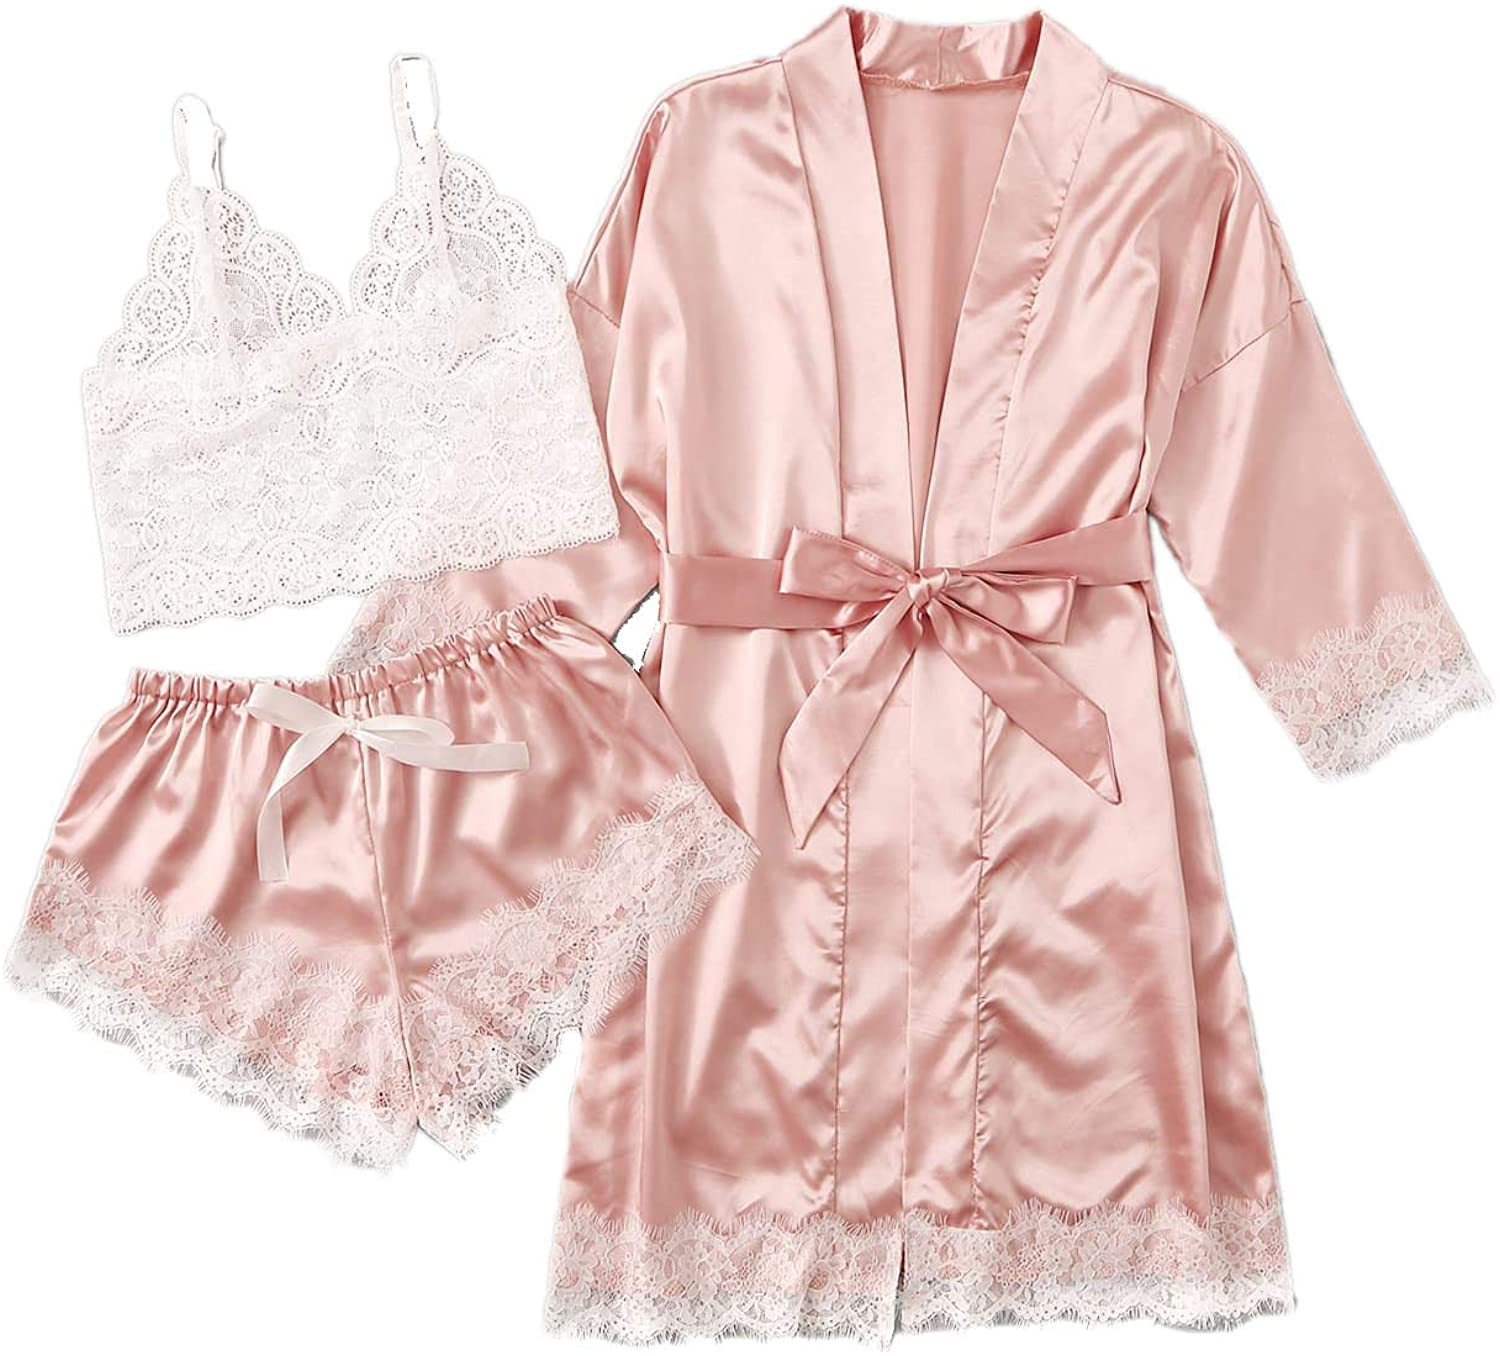 DIDK Women's Lace 3 Piece Satin Robe and Pajama Set with Robe Camisole Sleep Shorts